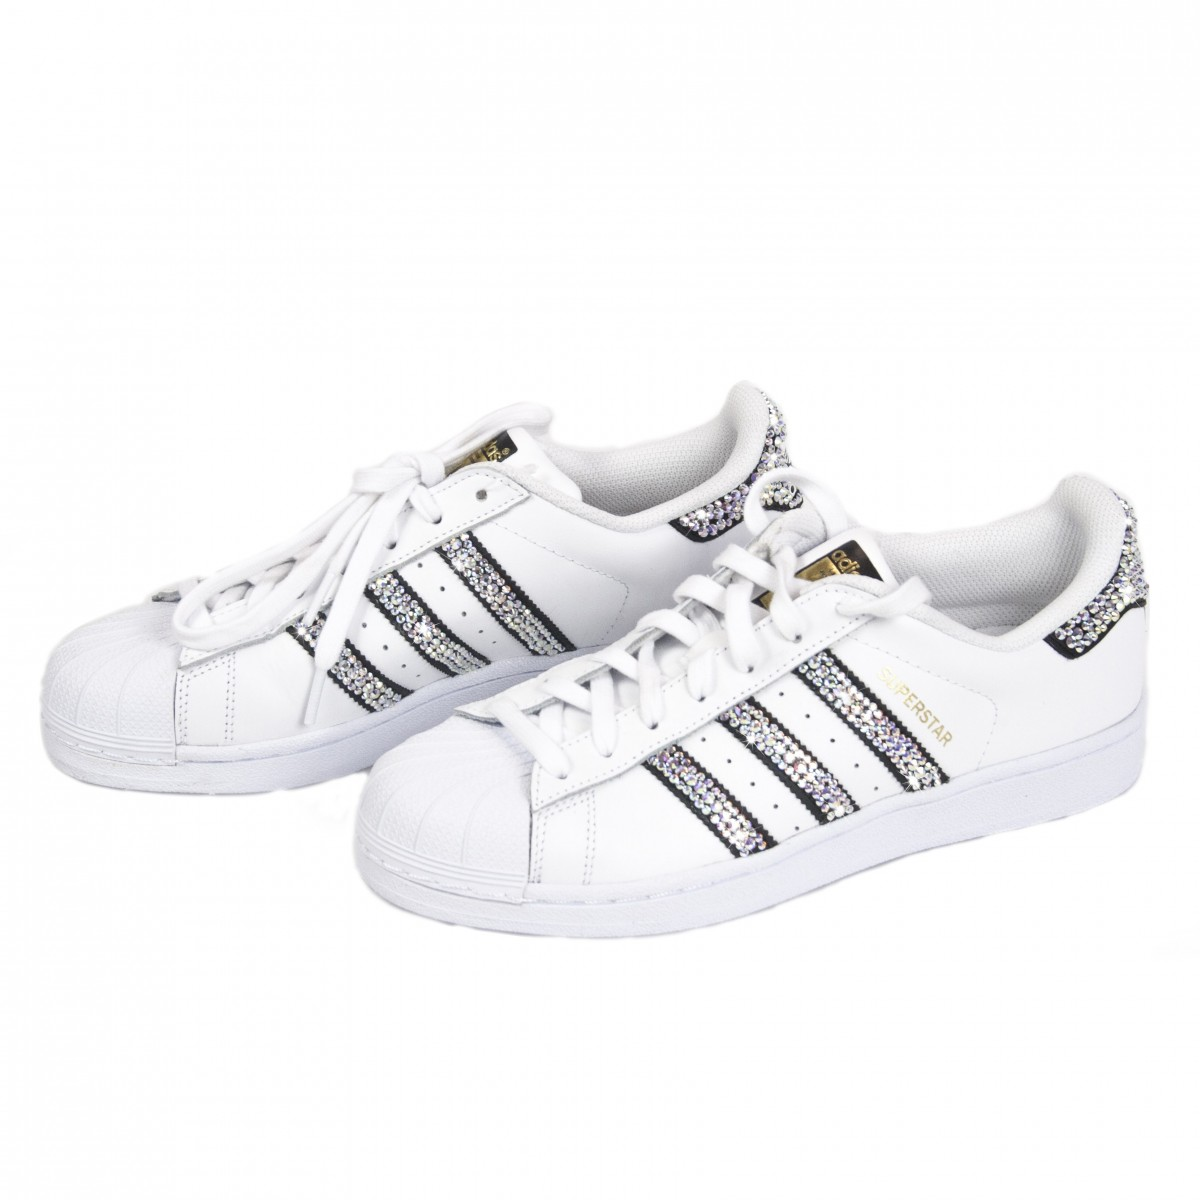 ADIDAS SUPER STAR STRASS TOTAL LOOK Shop Online